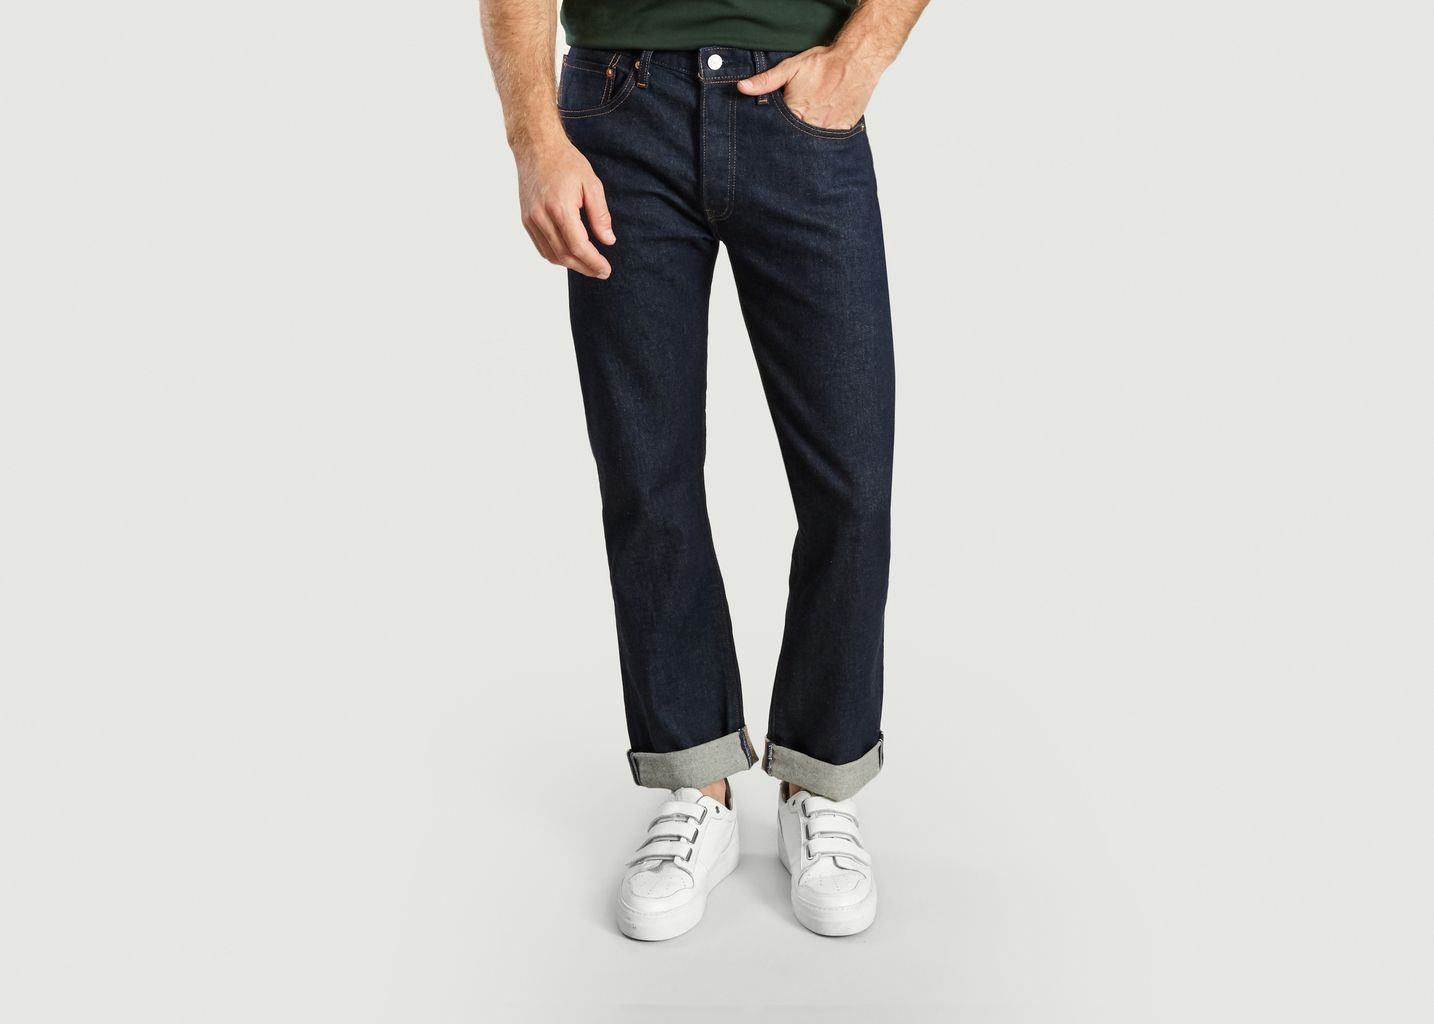 Jean 501 Selvedge - Levi's Made and Crafted